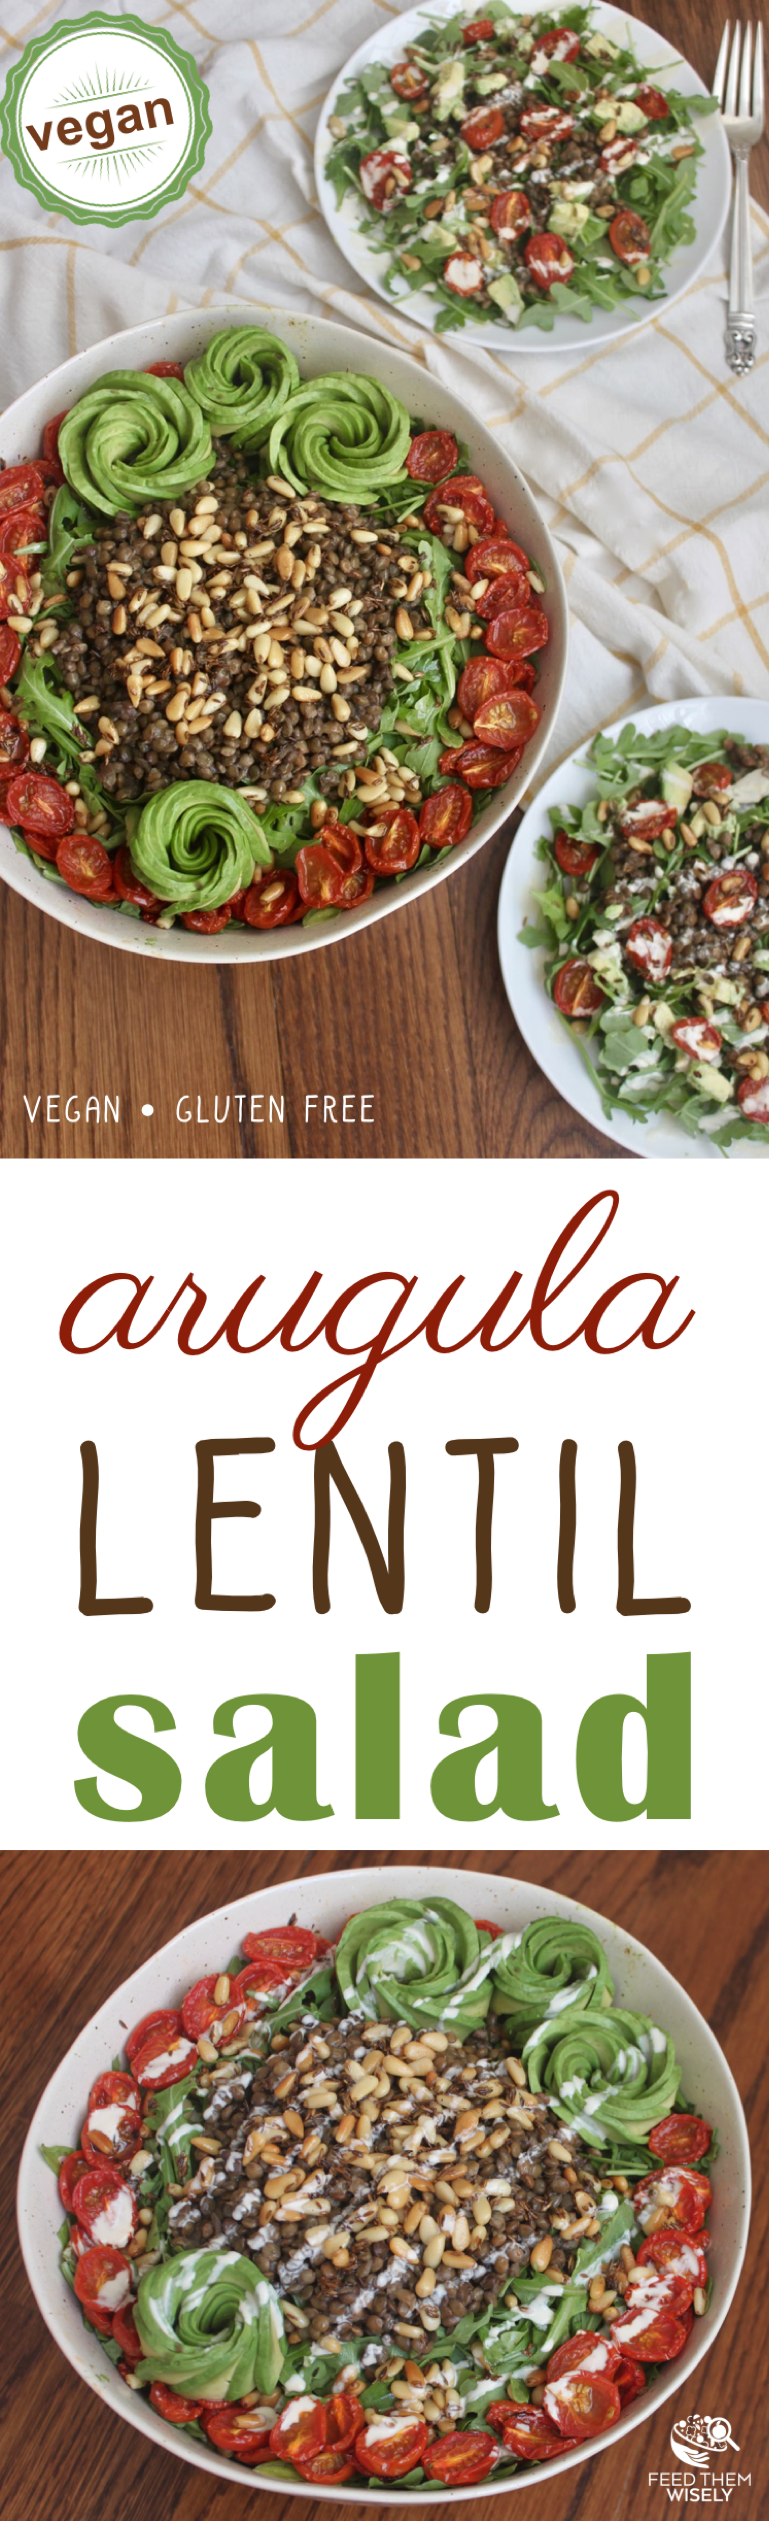 Arugula lentil salad with cumin toasted pine nuts, oven-roasted tomatoes, avocado and a tangy lemon tahini dressing.  #vegan #glutenfree #healthy #salad #recipe